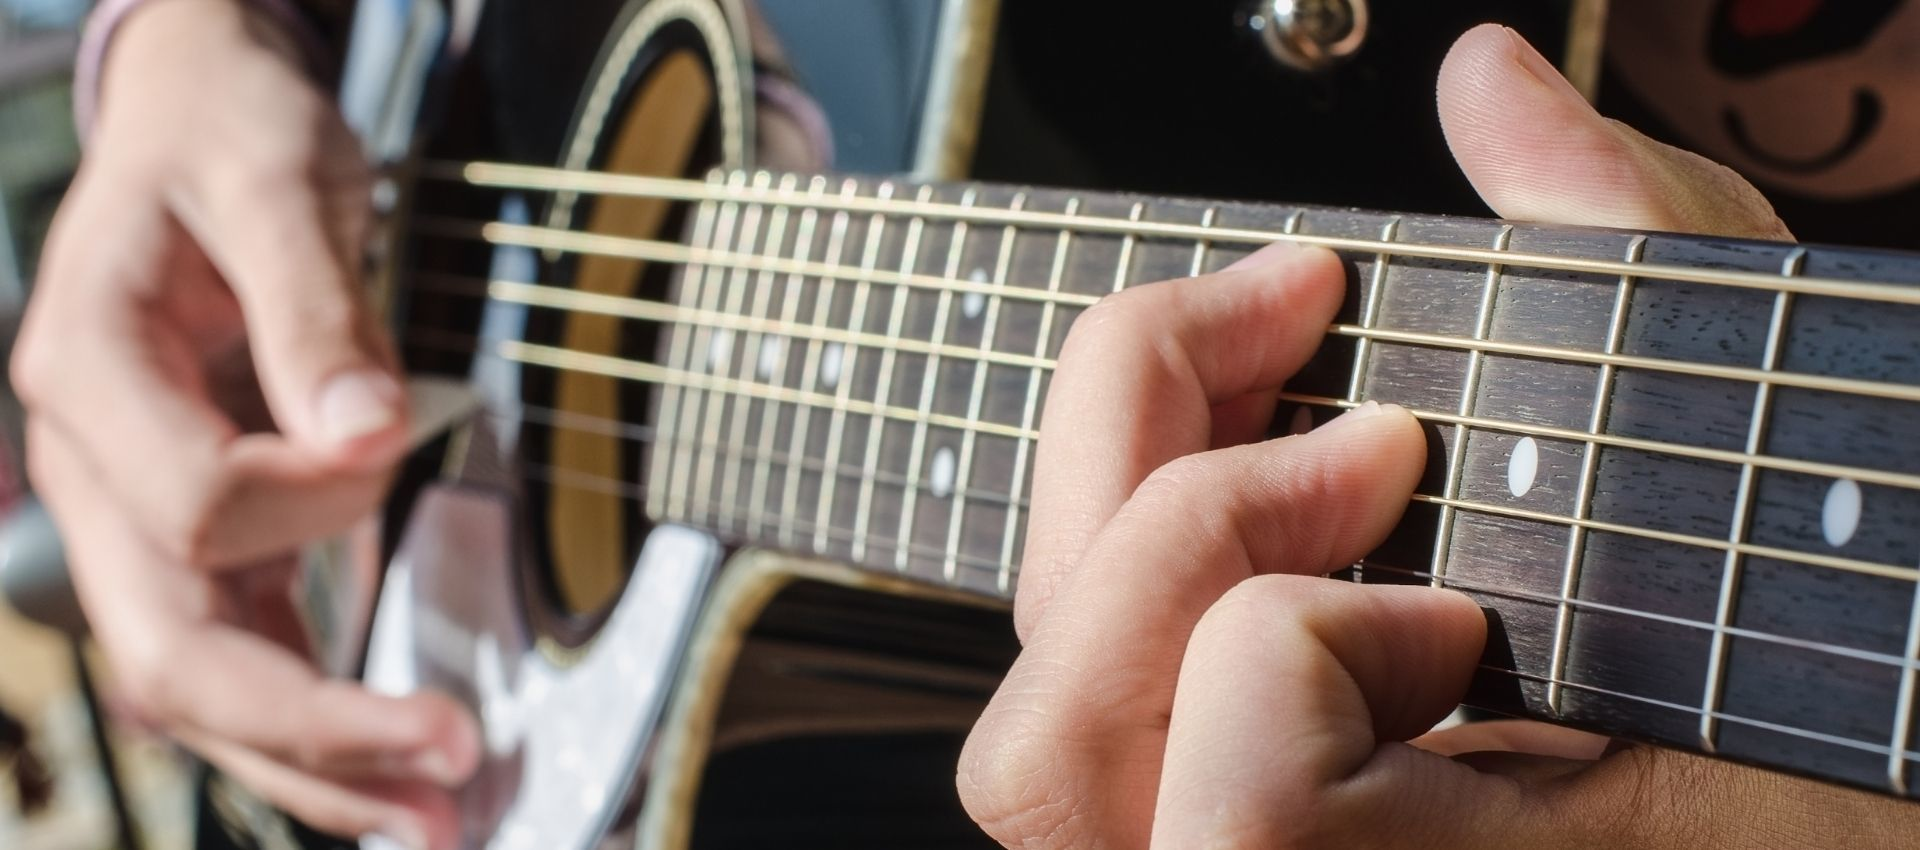 LL Blog How To Make Chords Fit Together Without The Theory Part 1